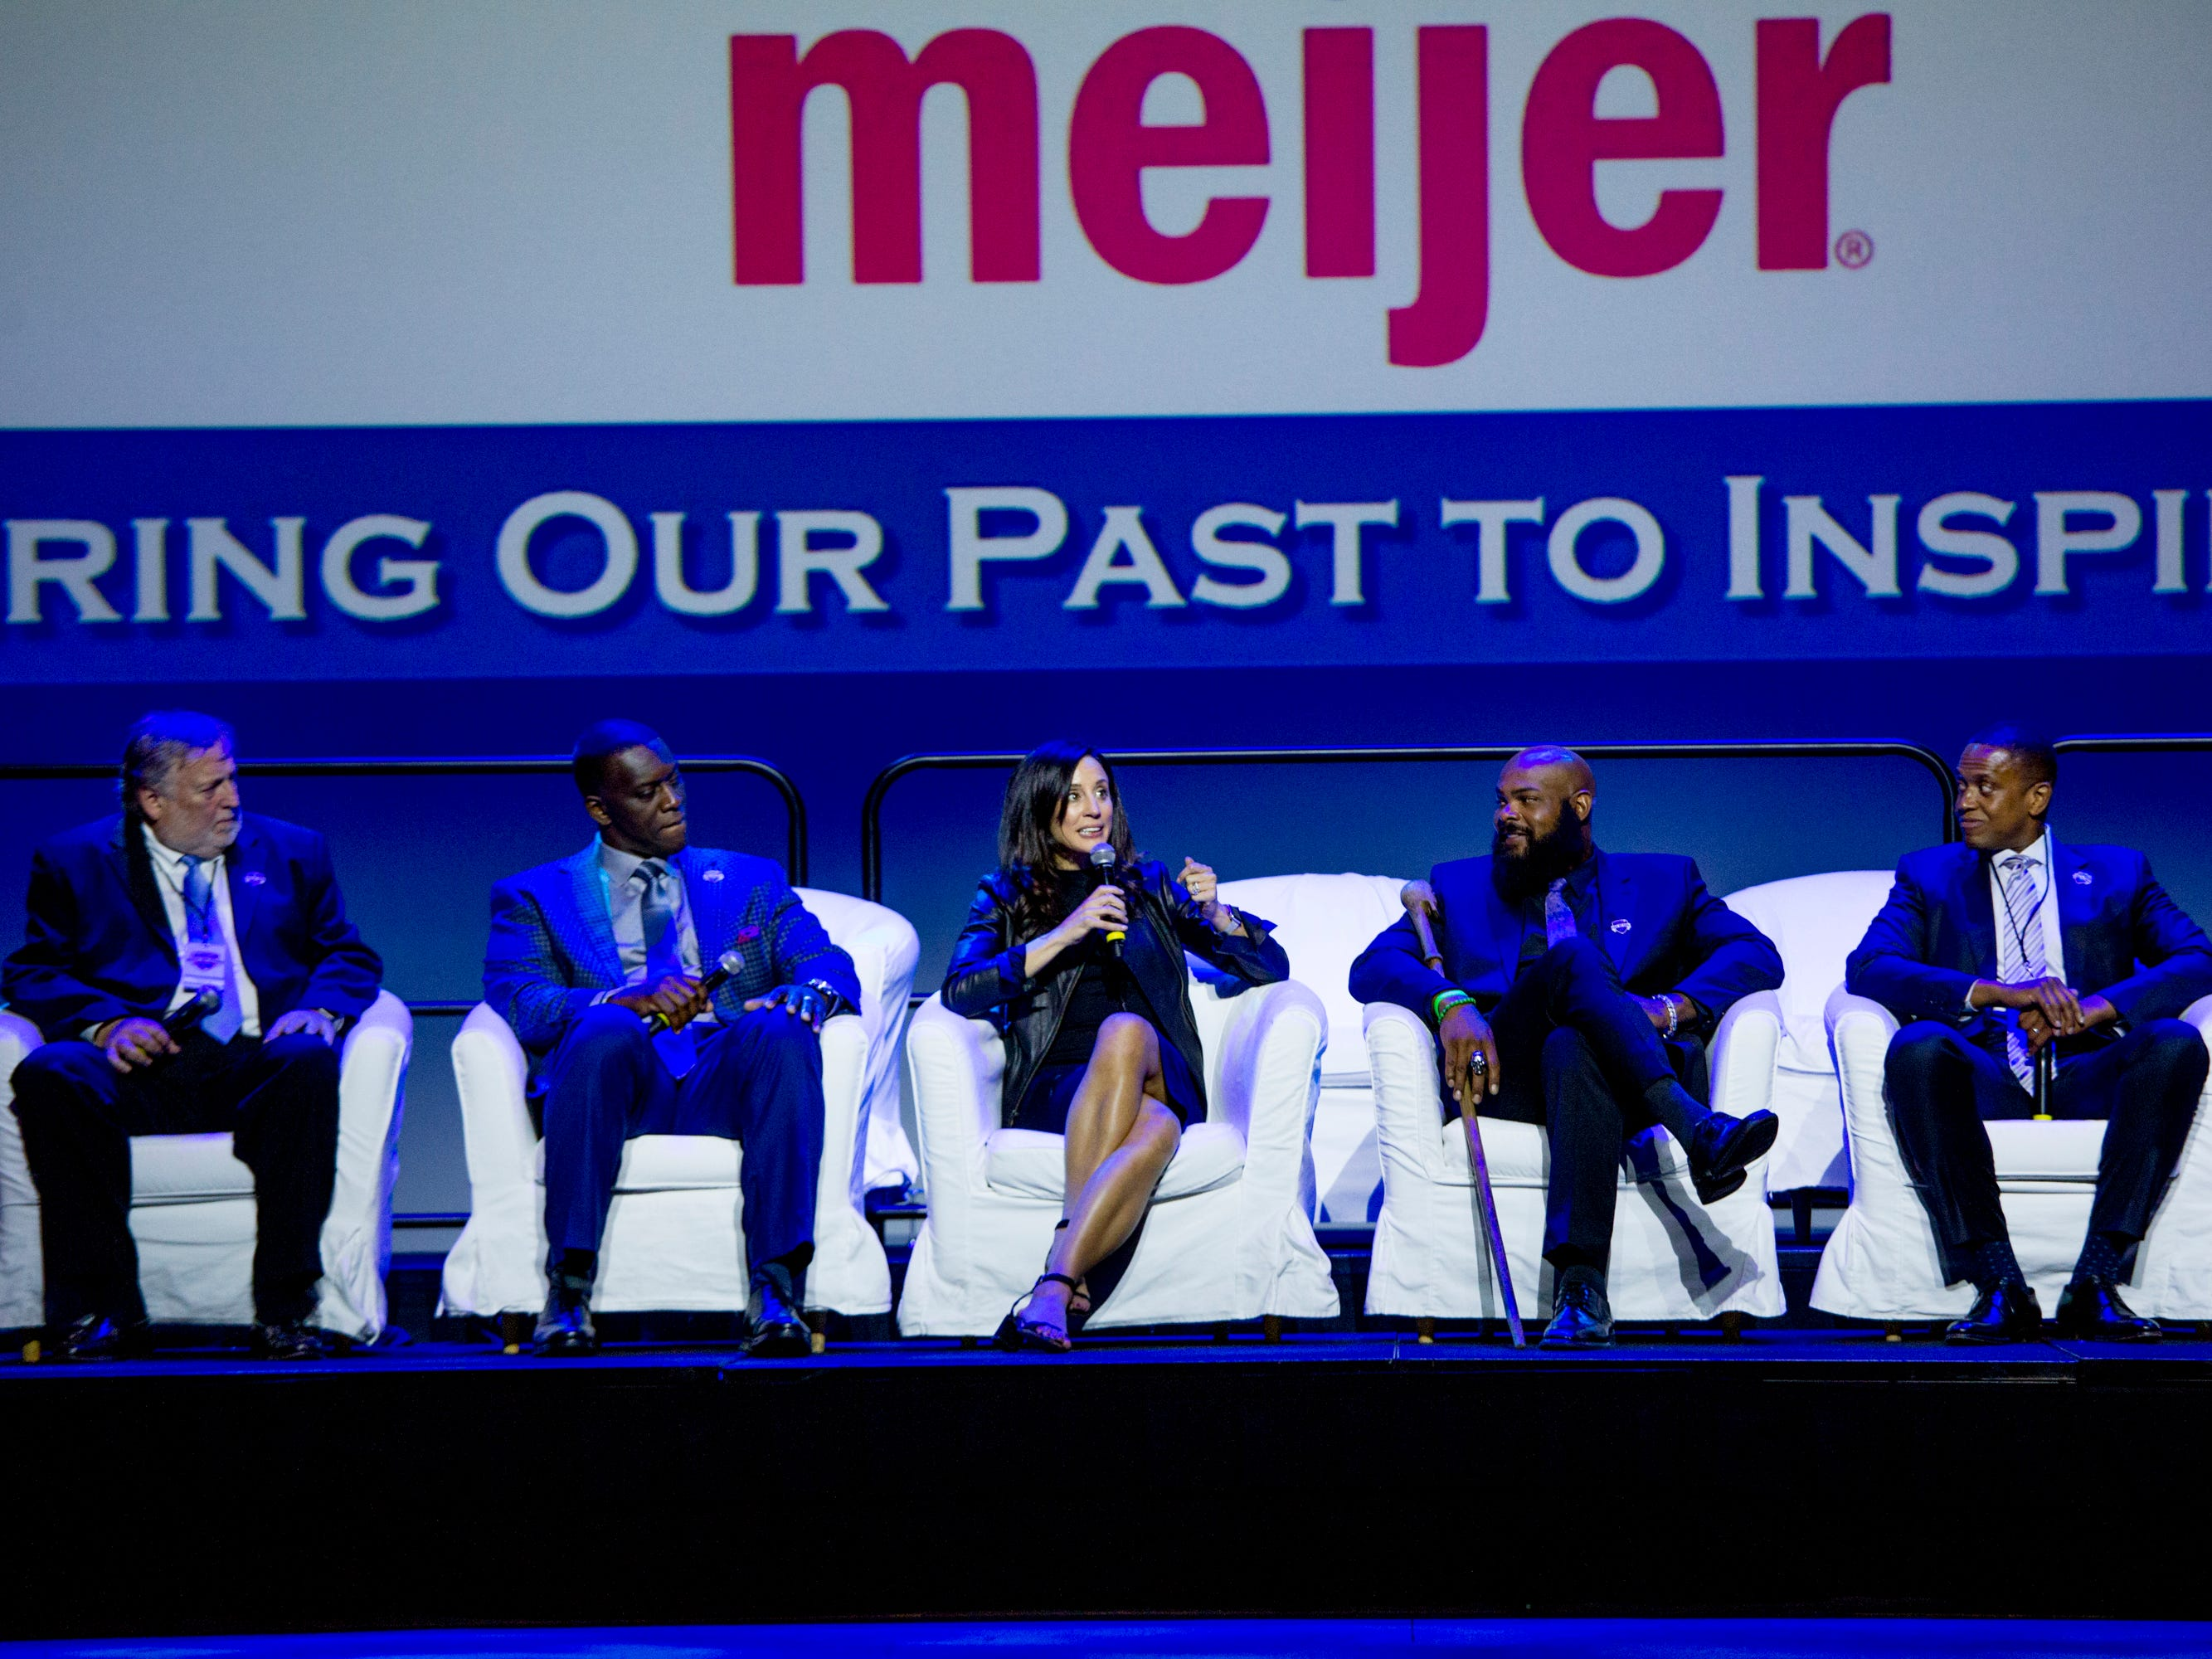 (L to R) Sports journalist Mike McCabe,  former Detroit Lion Robert Porcher, Olympic soccer player Kate Sobrero Markgraf, former Spartan running back TJ Duckett and former pro basketball player BJ Armstrong sit on stage during the Michigan Sports Hall of Fame induction ceremony at Motor City Casino in Detroit, MI on September 28, 2018.